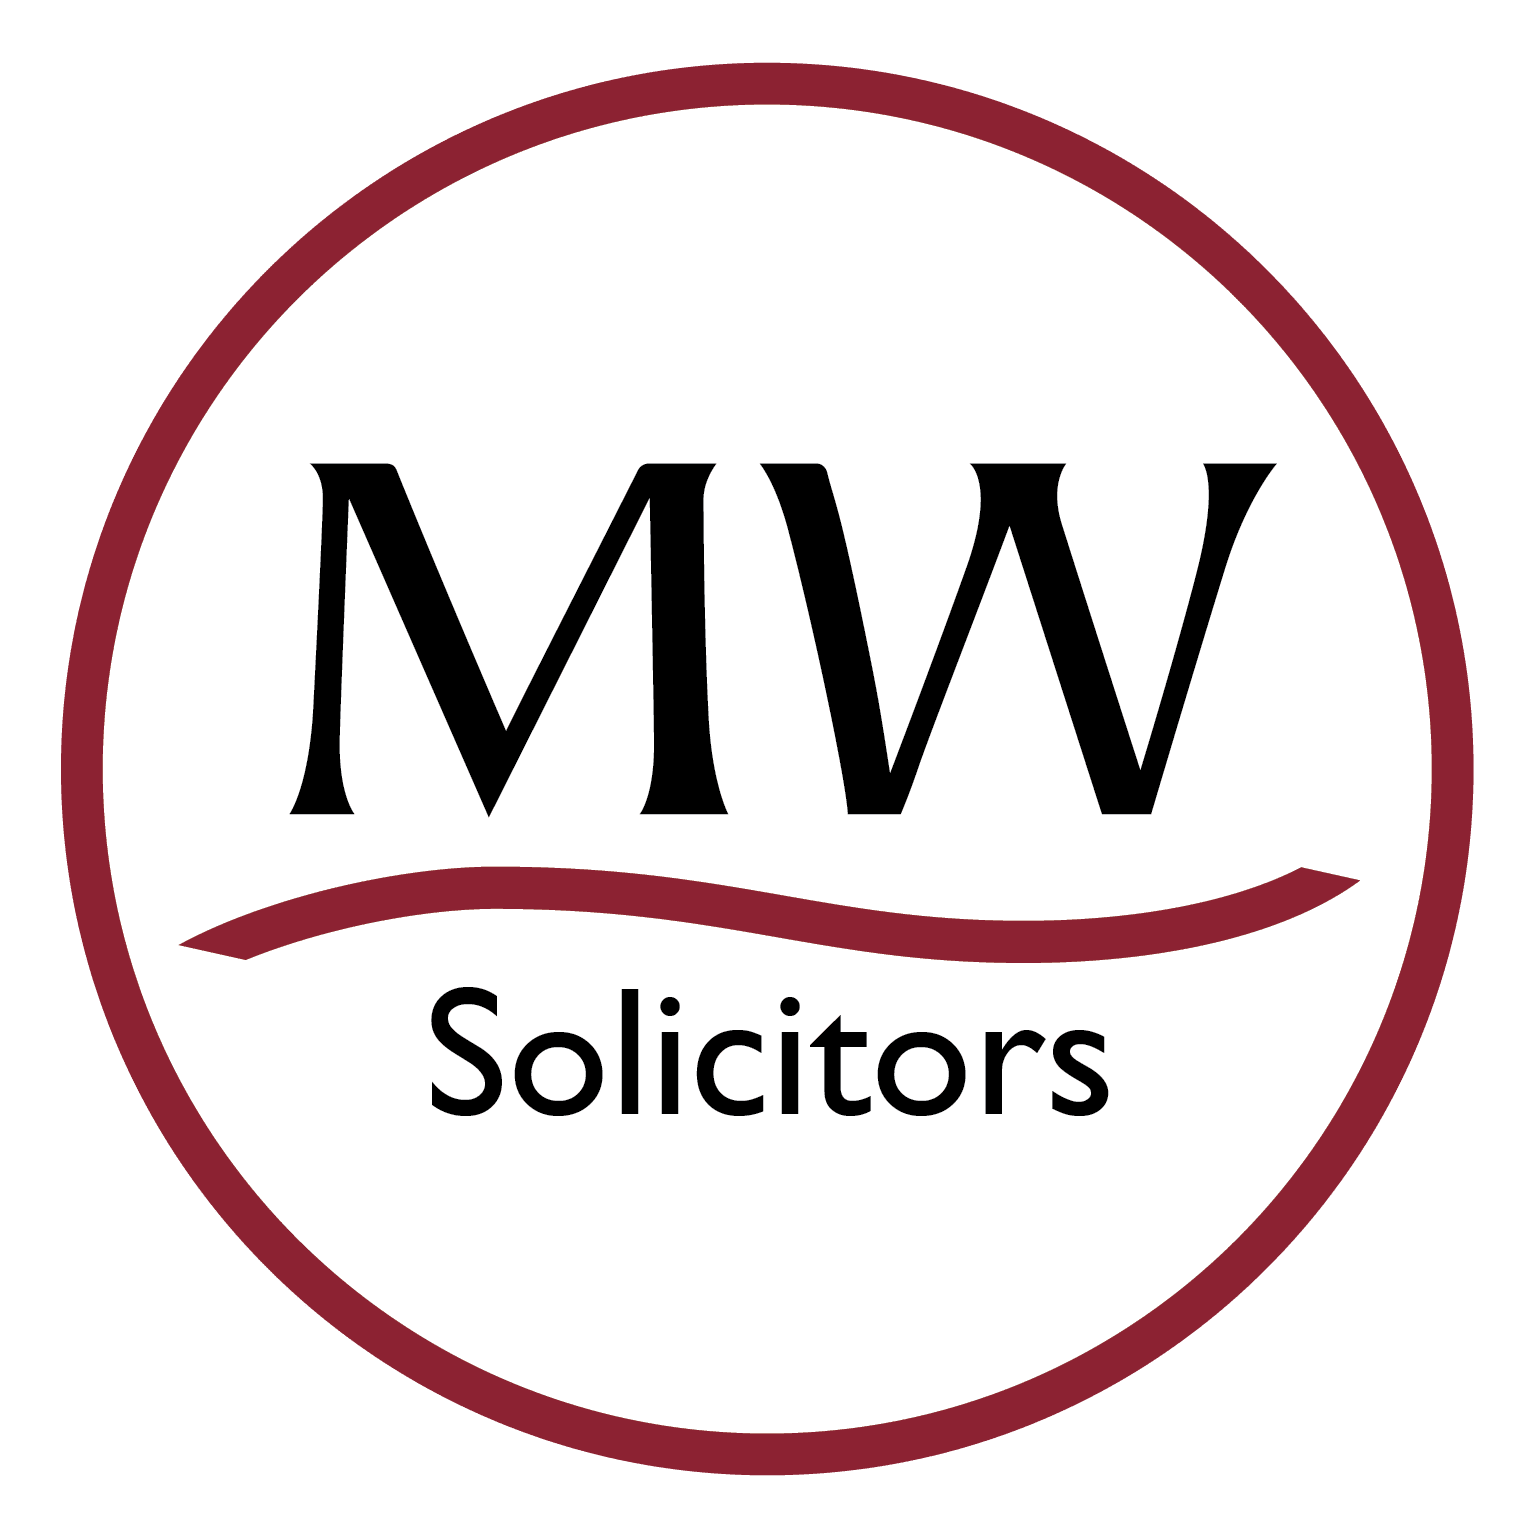 McMillan Williams Solicitors Ltd - London, London SW19 3TA - 020 8944 0082 | ShowMeLocal.com